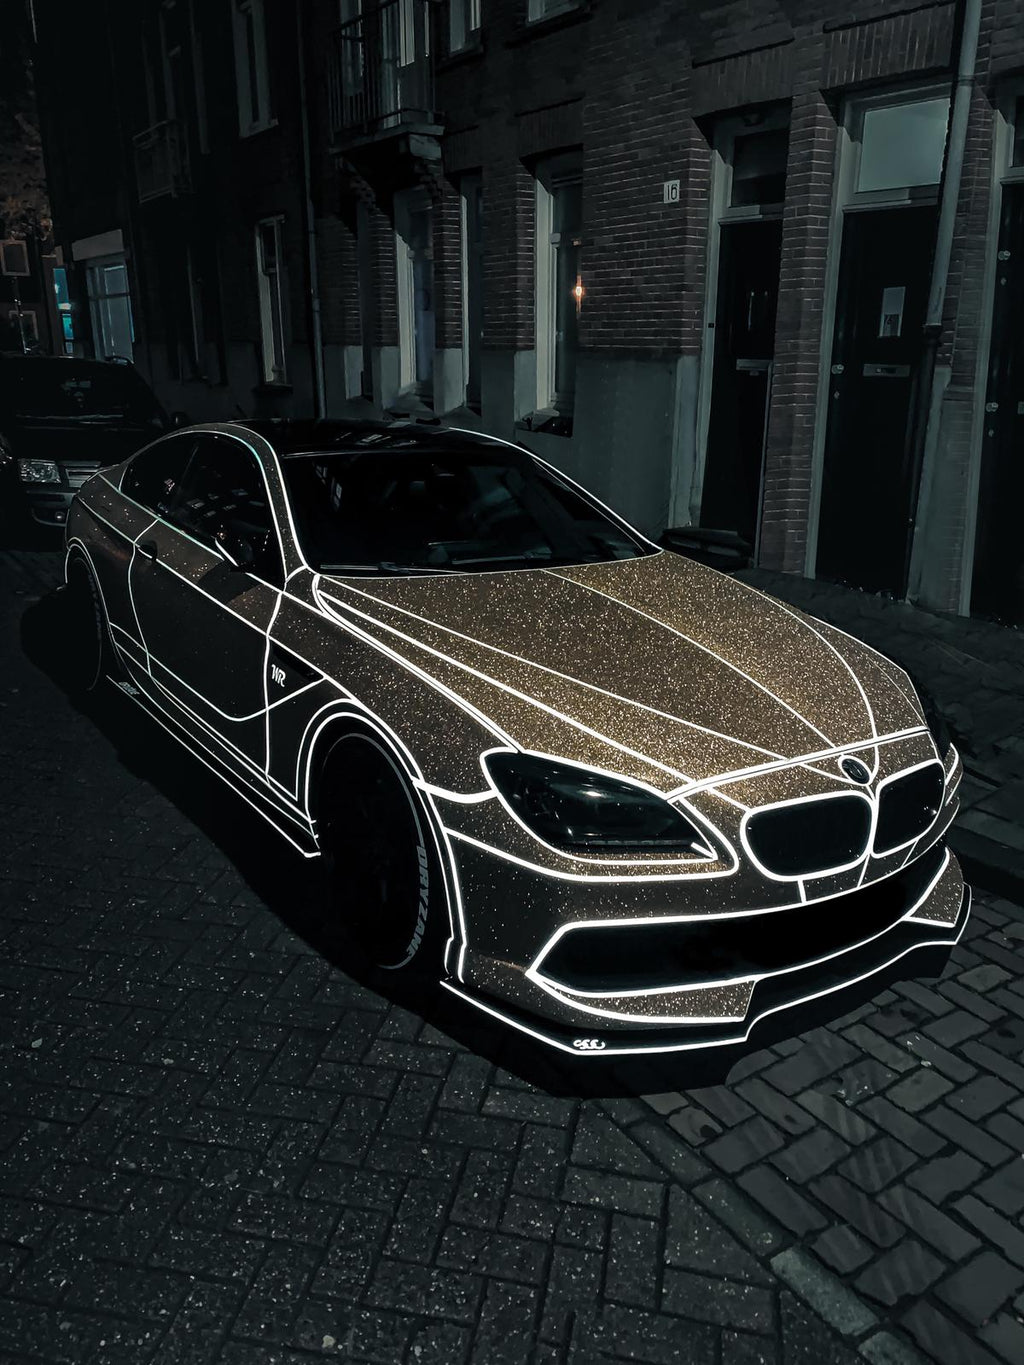 Gold Diamond Vinyl wrap